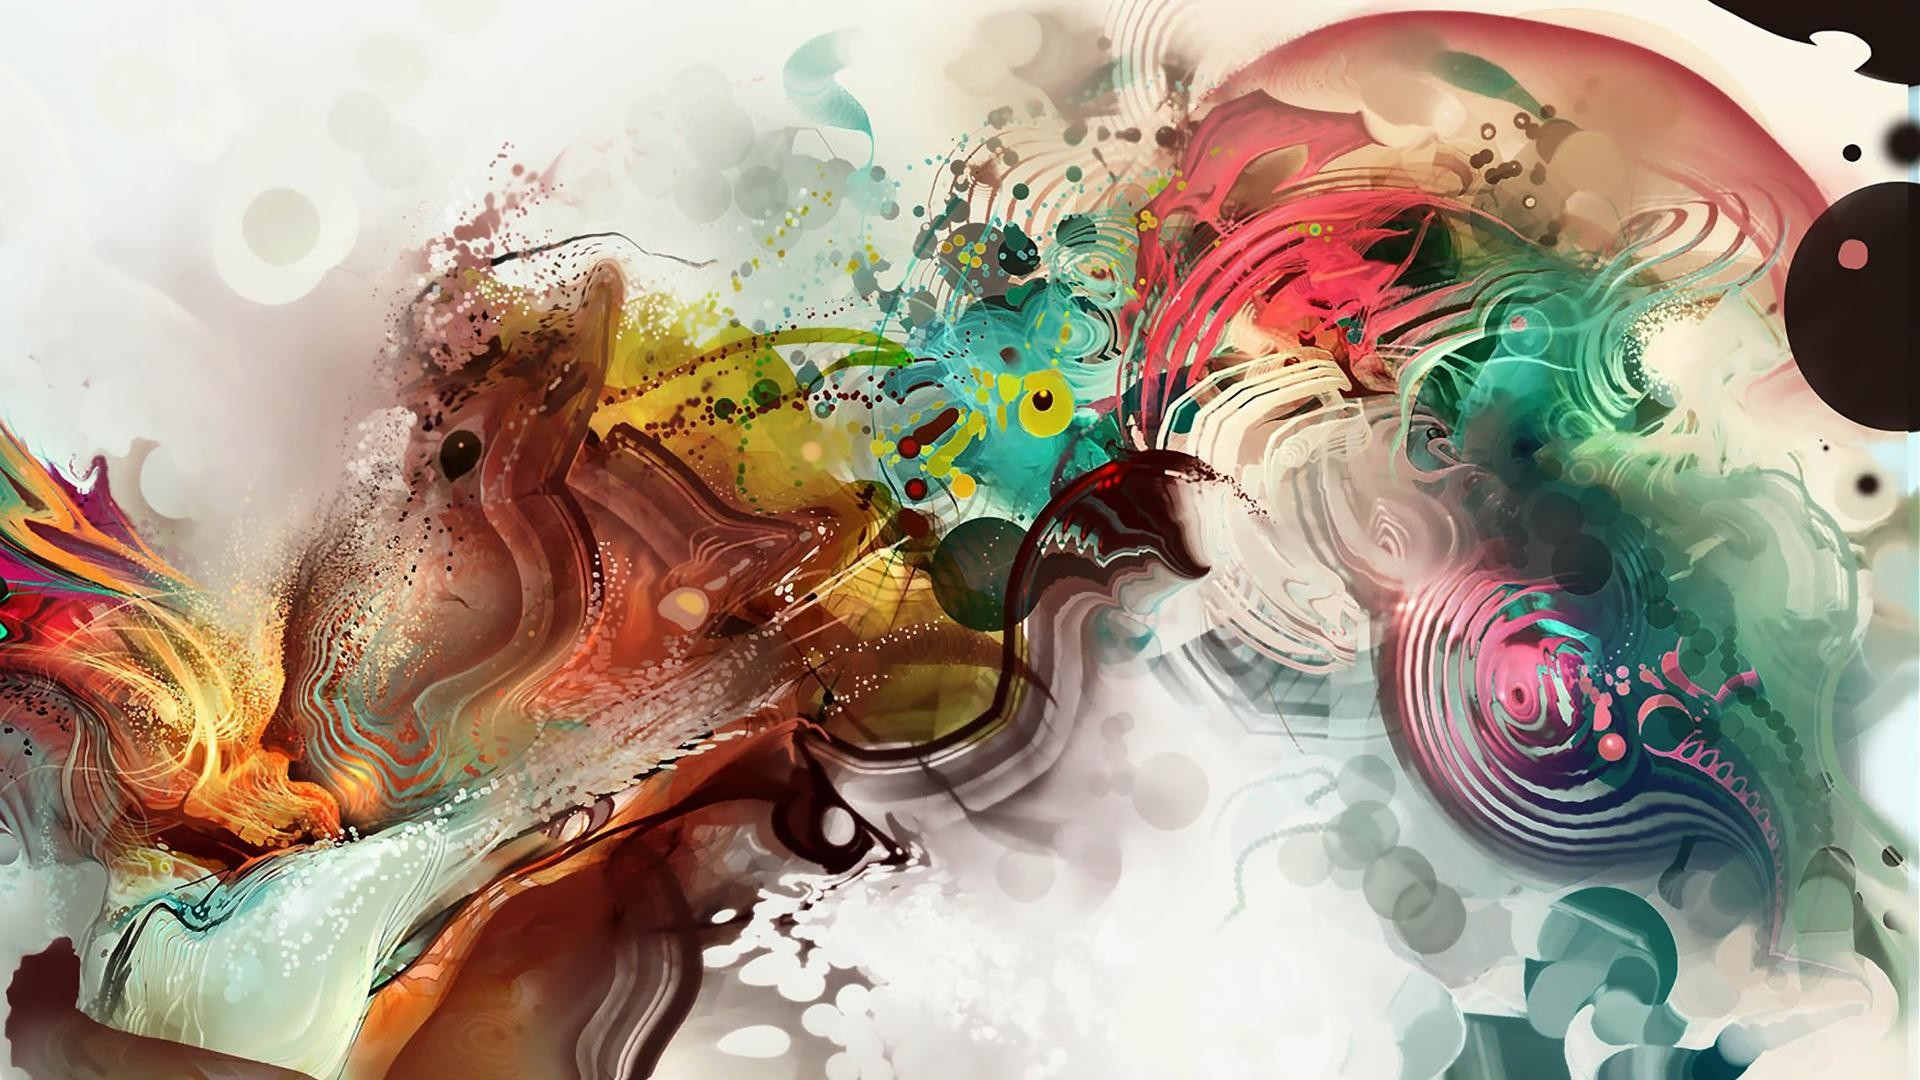 wallpaper.wiki-Abstract-artistic-hd-1080p-background-PIC-WPE0012098